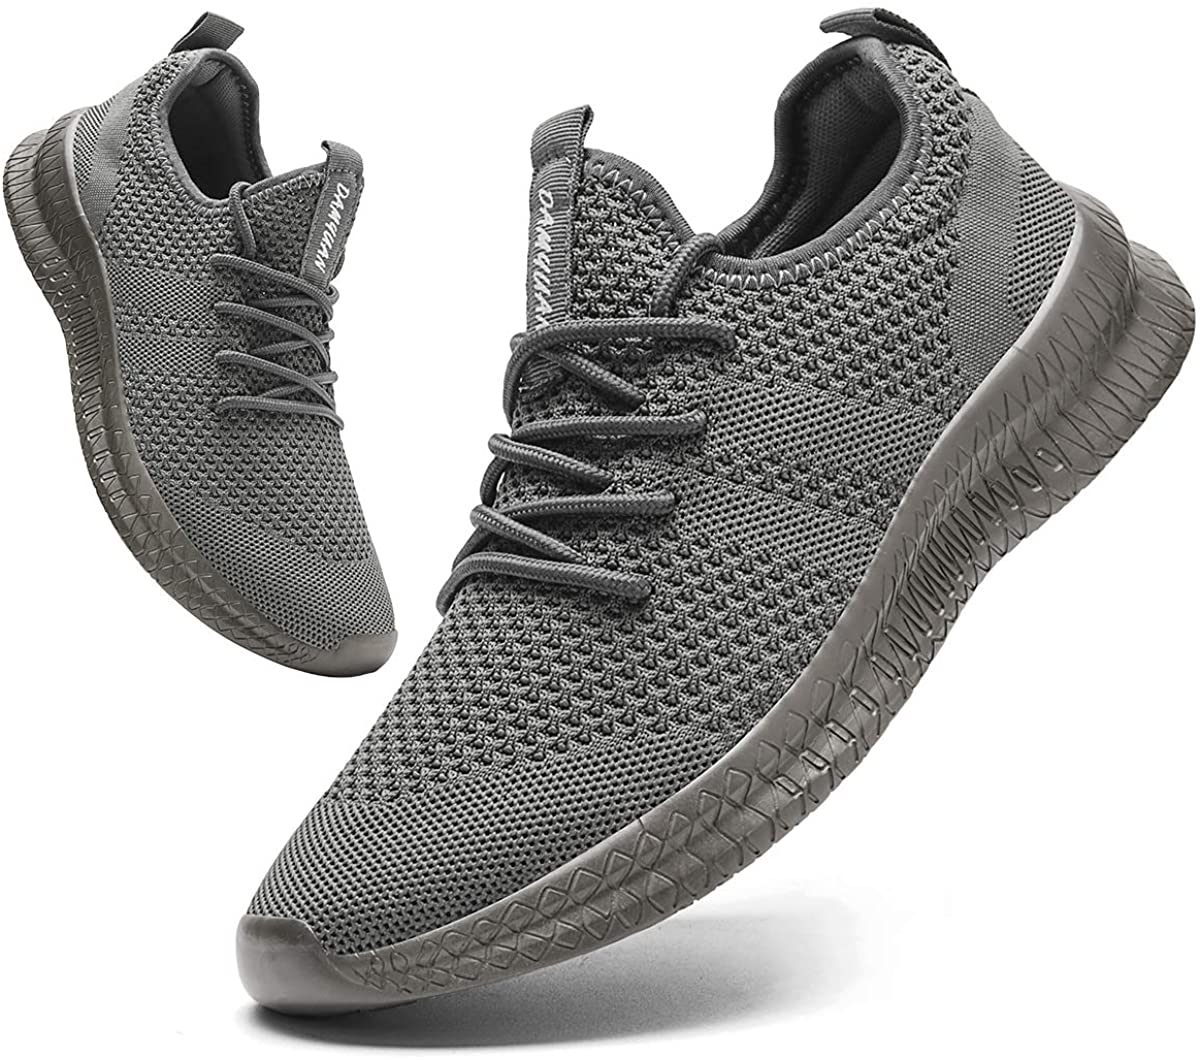 FUJEAK Men Running free shipping Max 76% OFF Shoes Breathable Spo Walking Casual